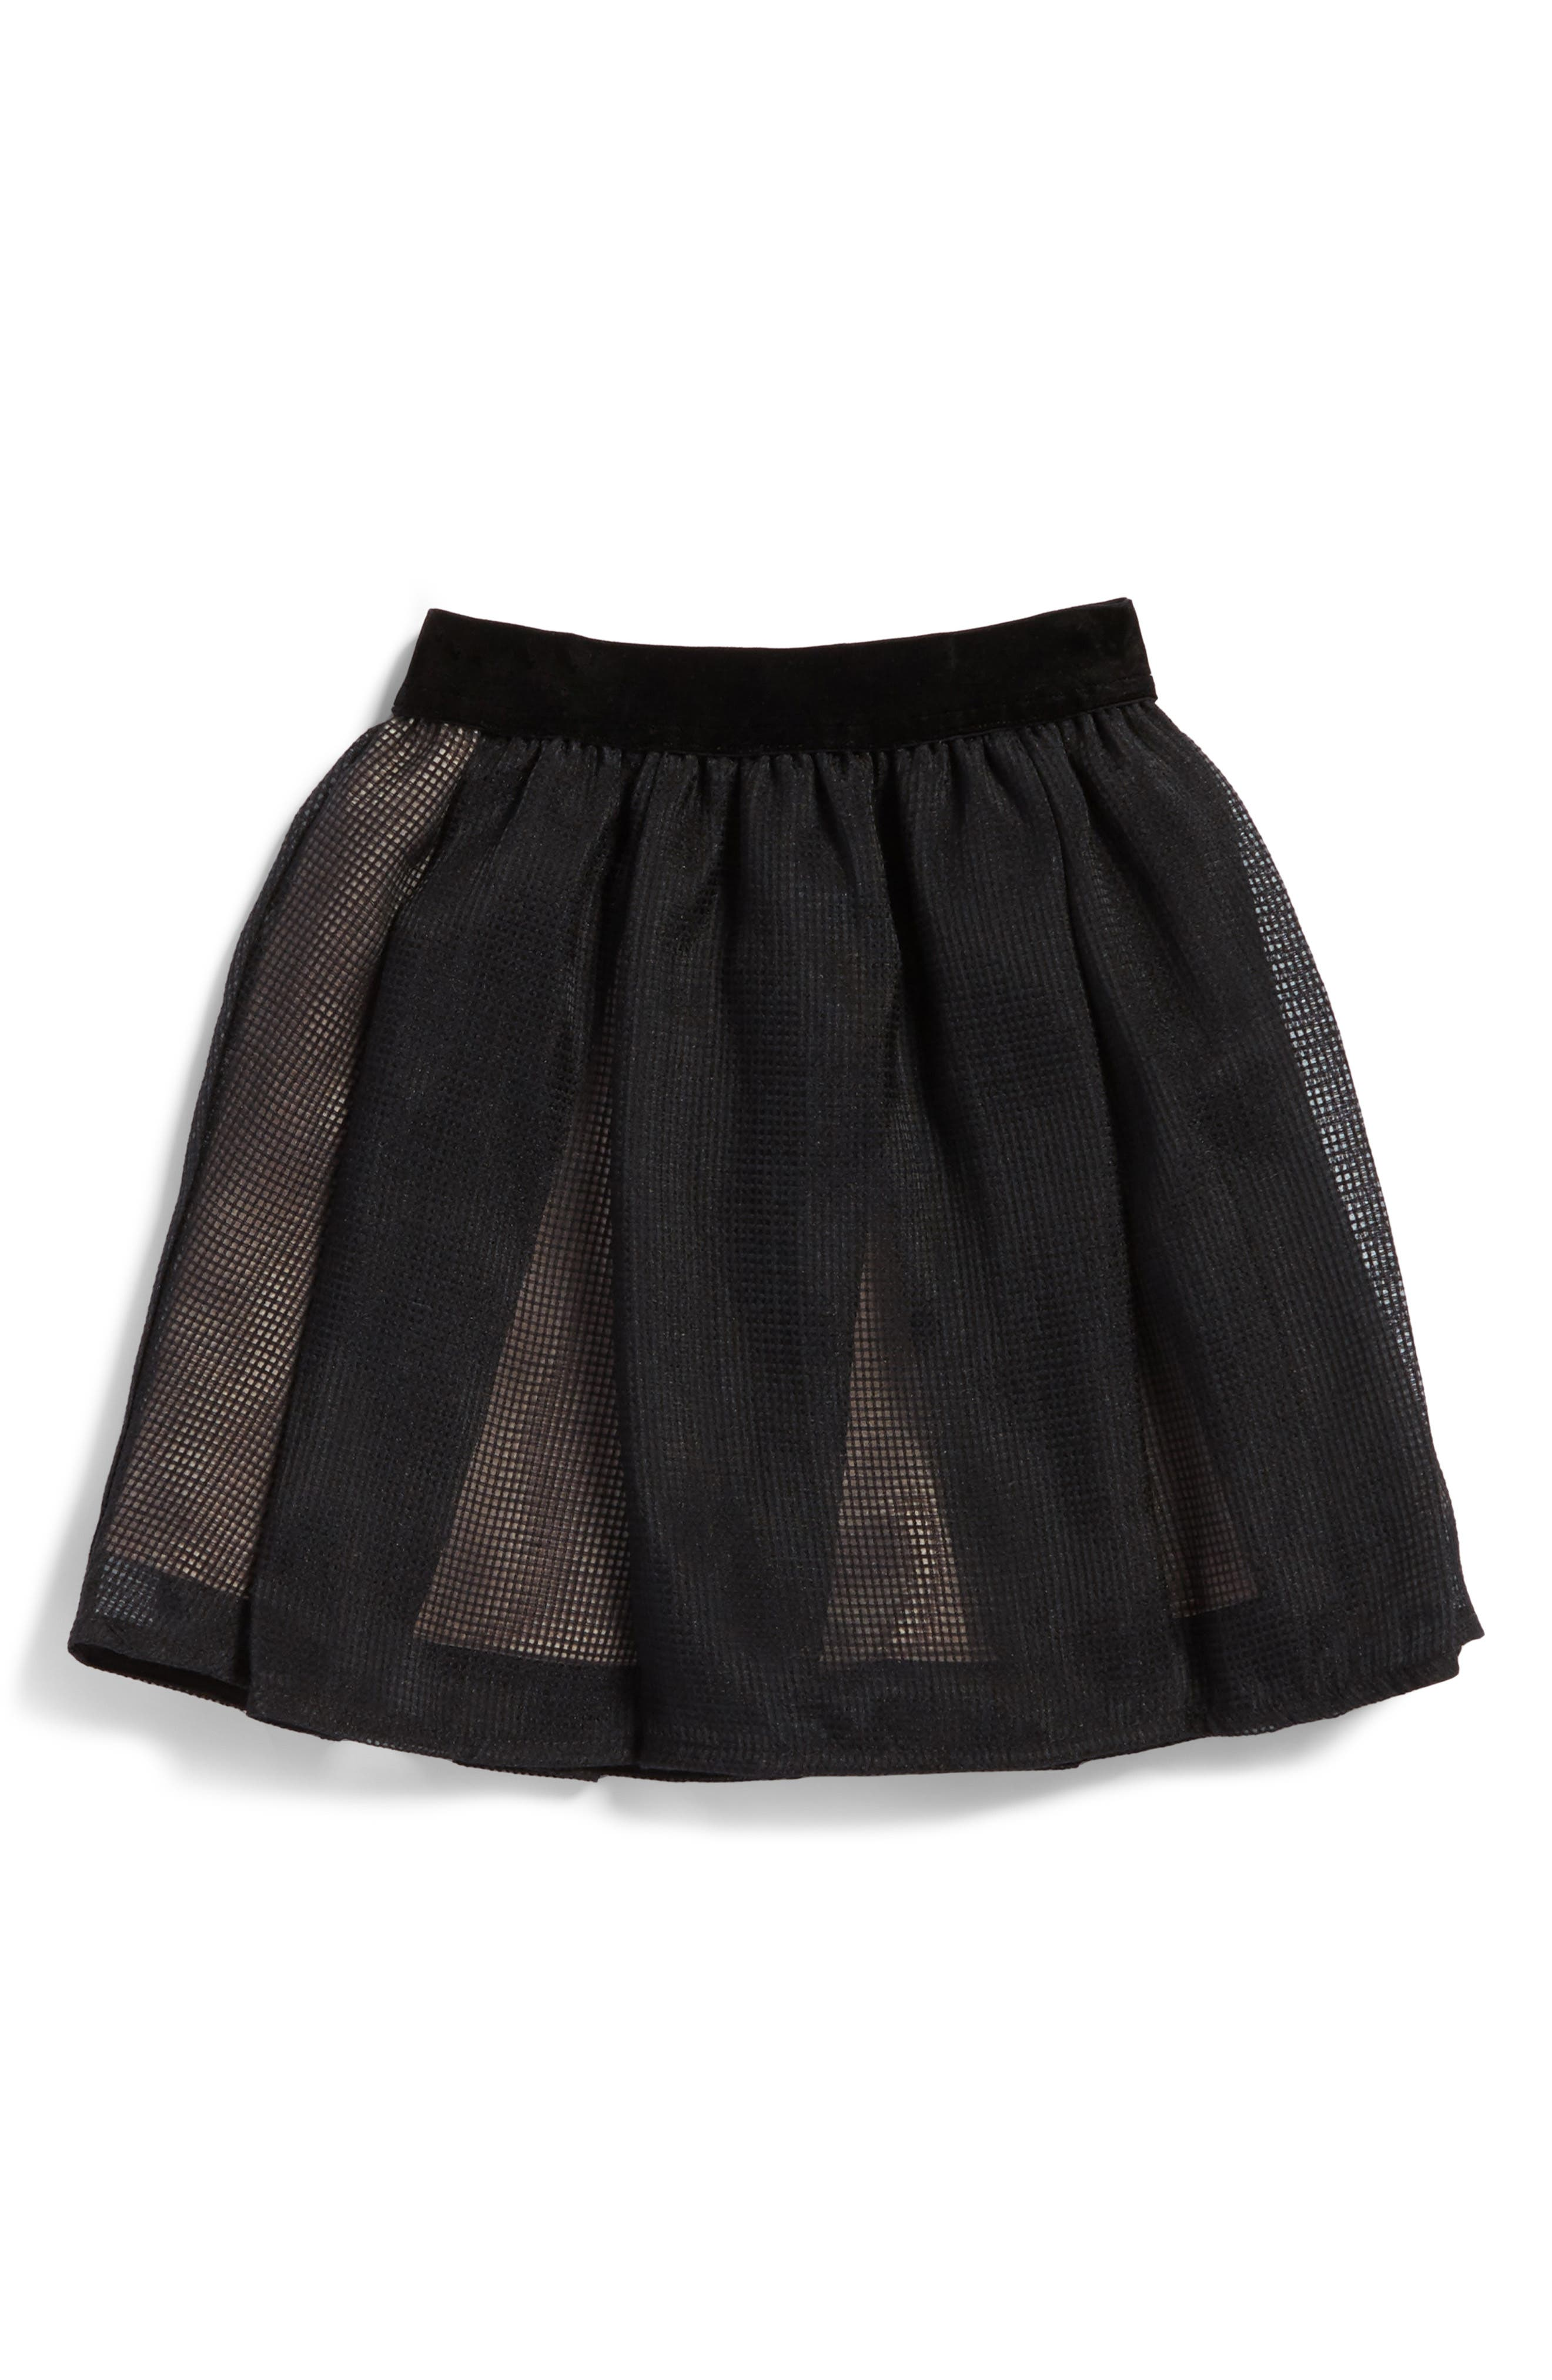 Blaire Mesh Skirt,                             Main thumbnail 1, color,                             001